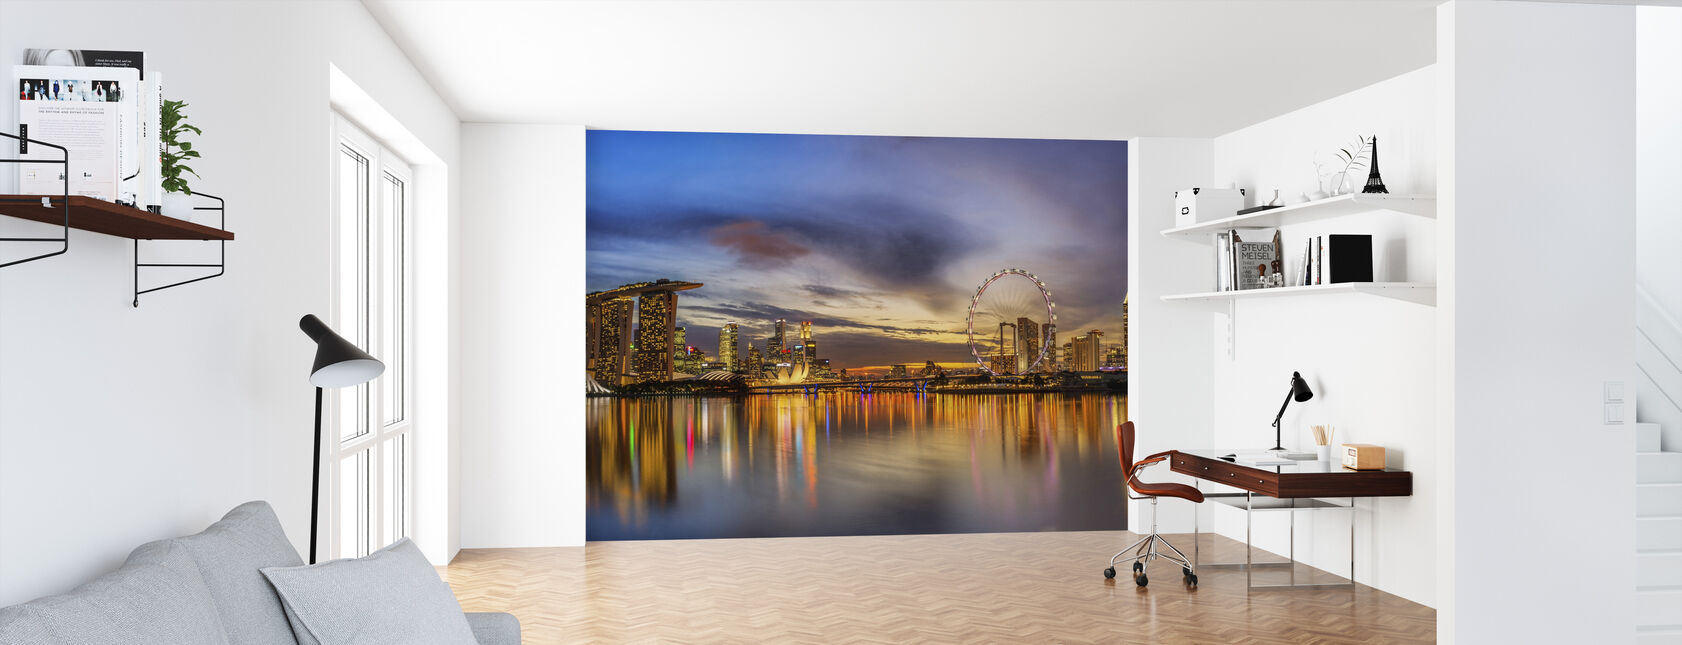 Sunset by the Bay - Wallpaper - Office